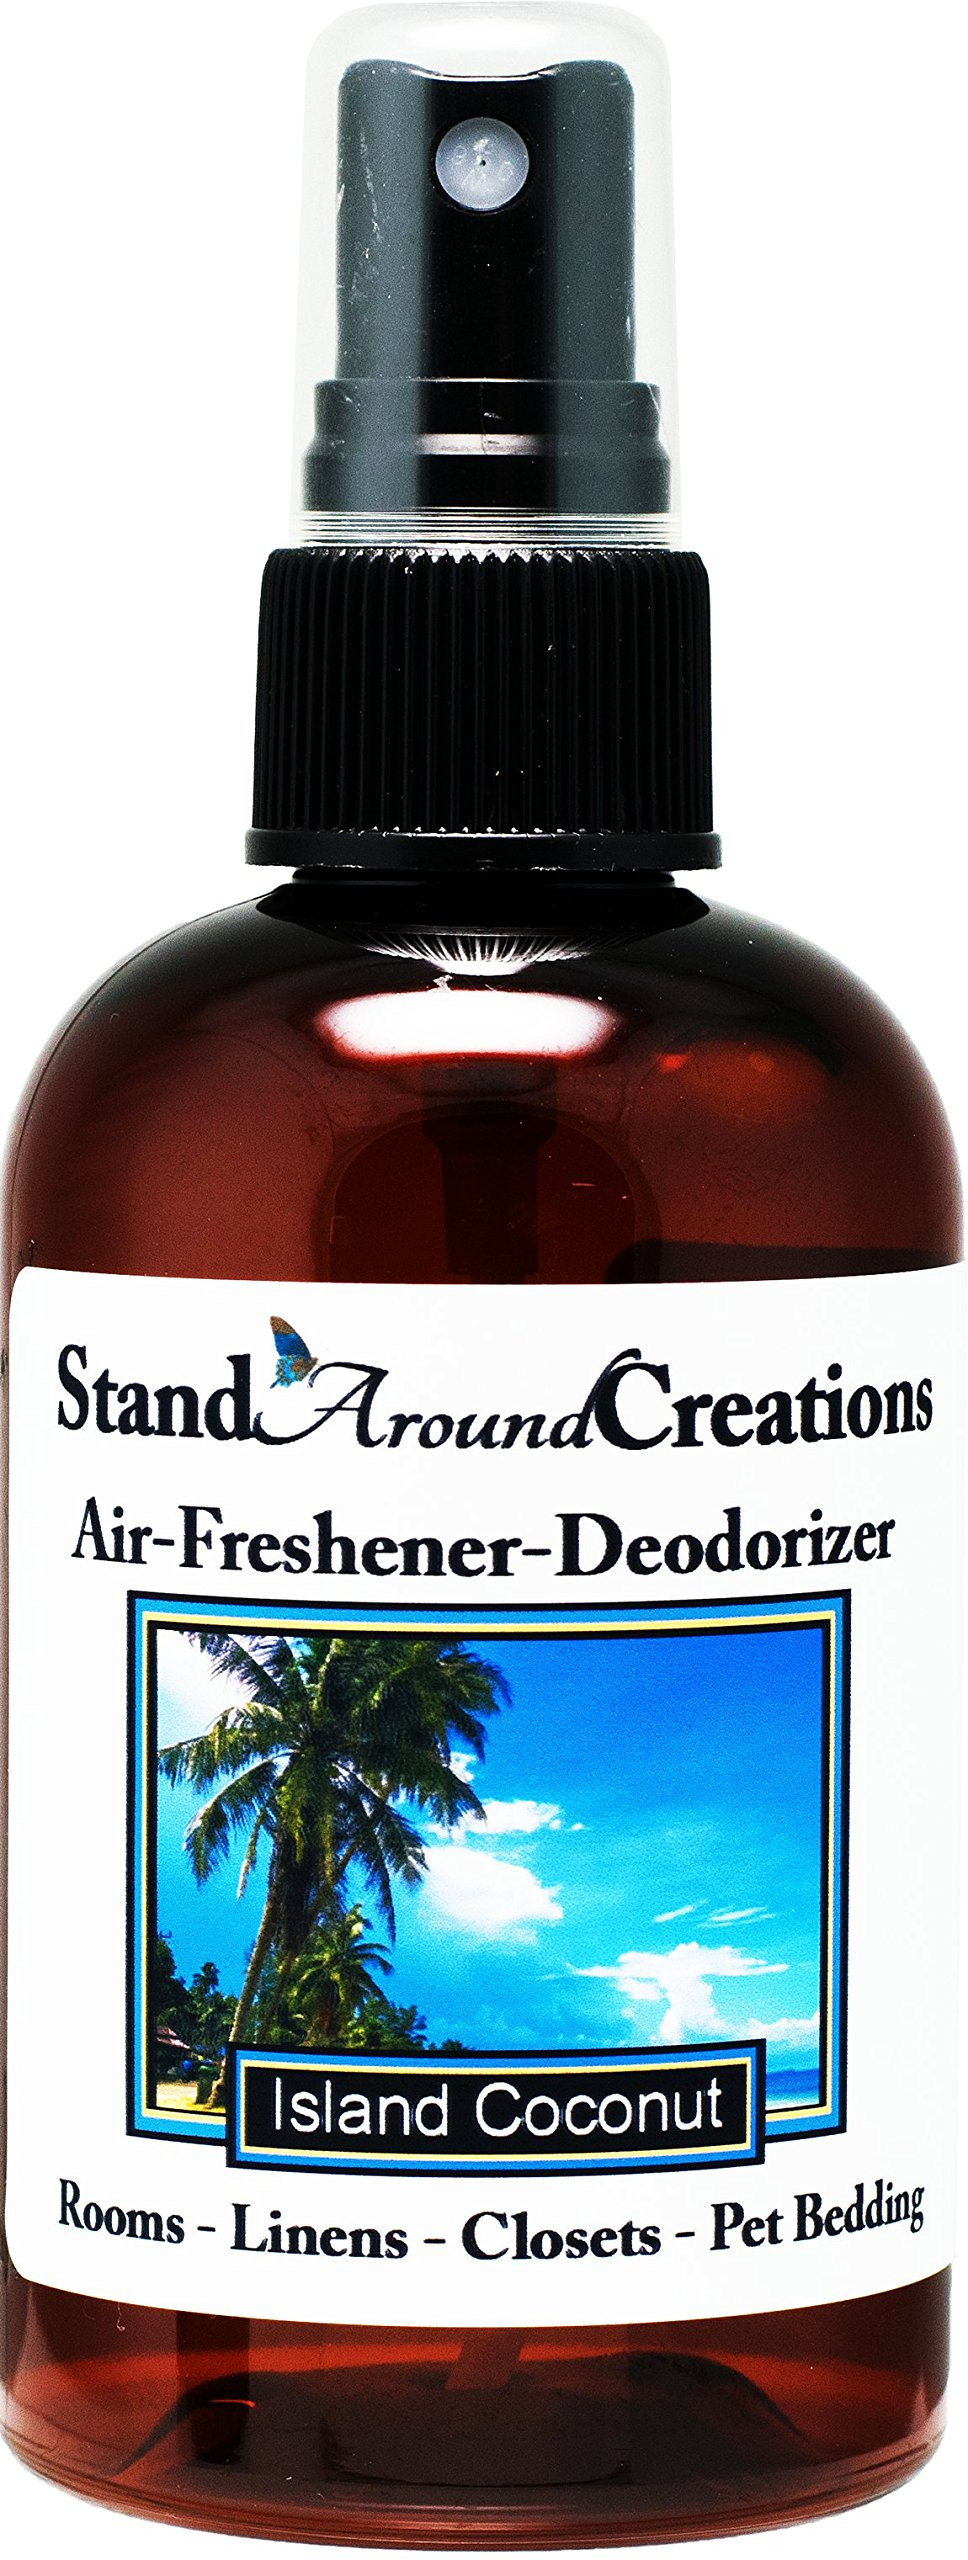 Concentrated Spray For Room / Linen / Room Deodorizer / Air Freshener - 4 fl oz - Scent - Island Coconut: The Sun infused notes of fresh Coconut w/ sweet pineapple and notes of vanilla.